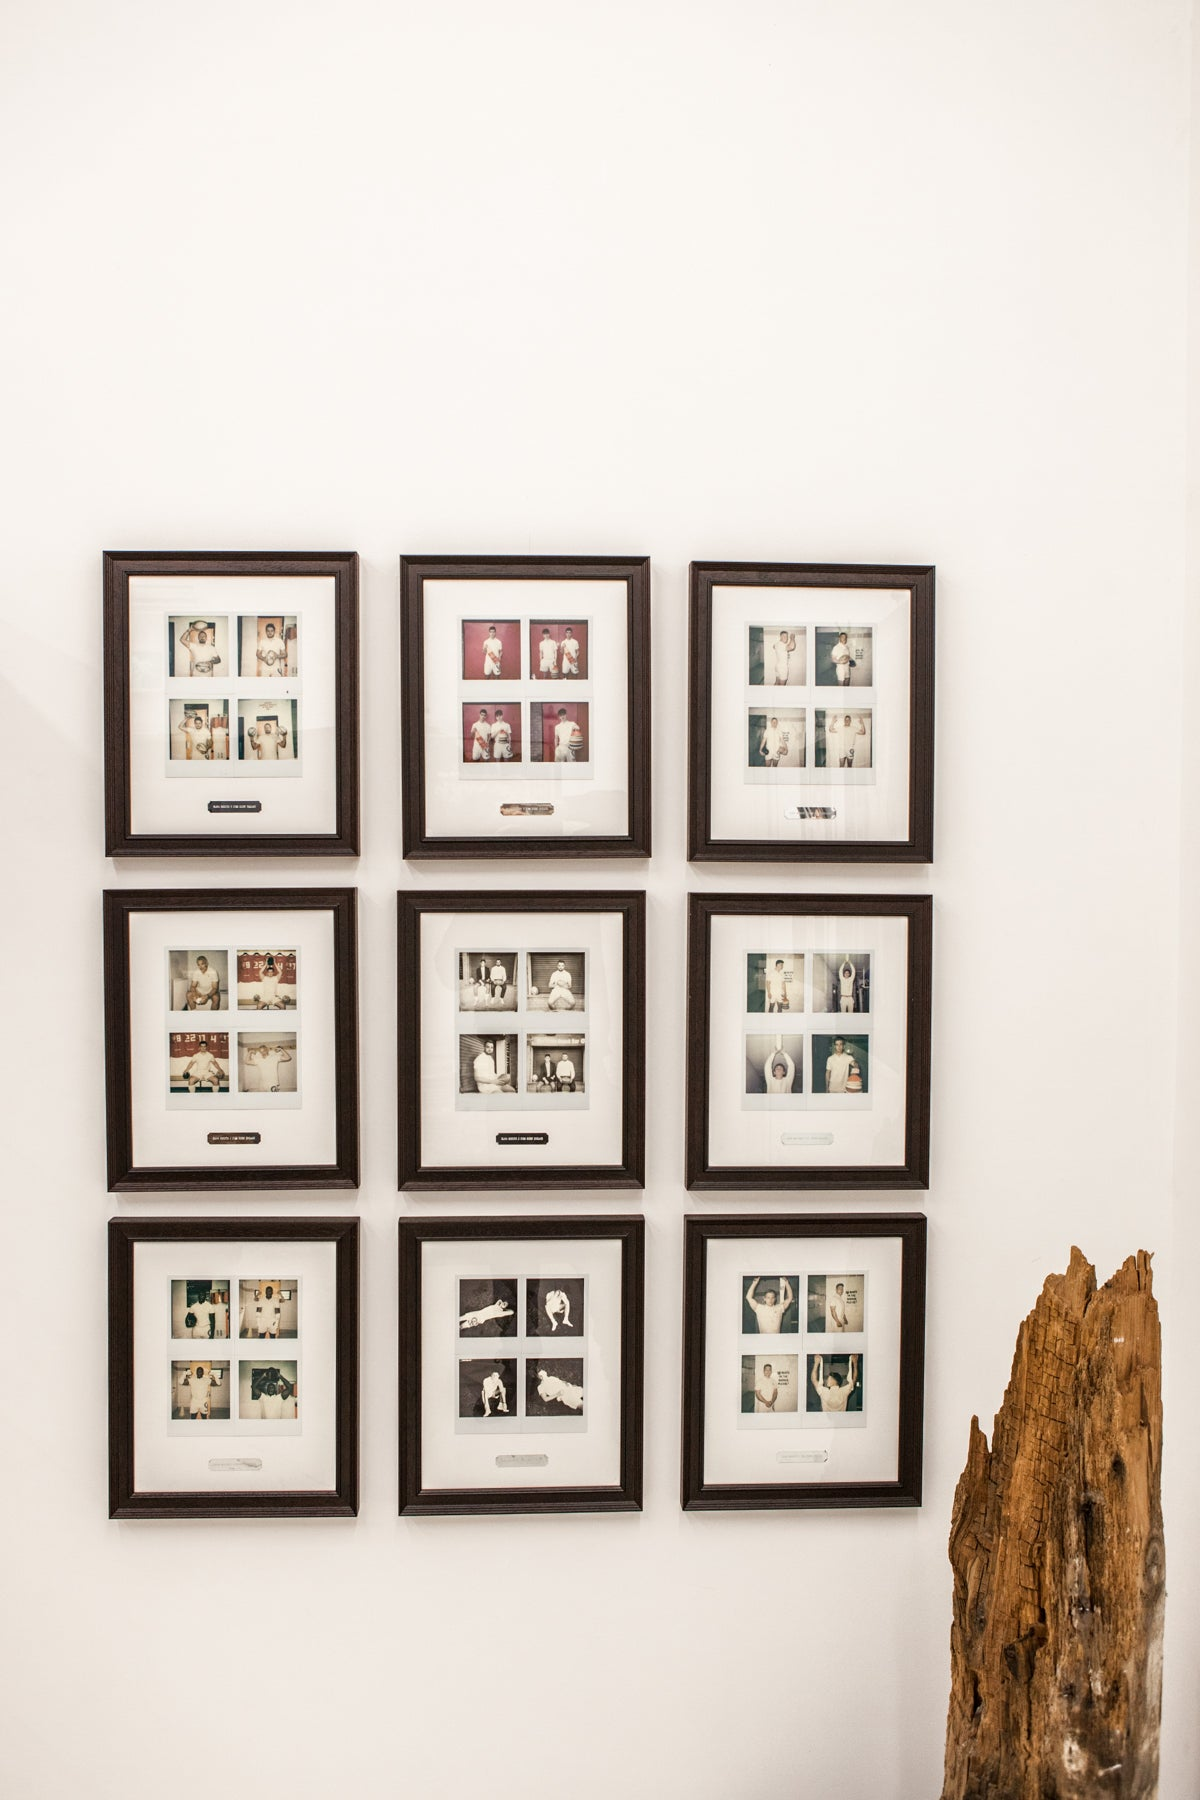 JOSS & BEN - 320mm × 400mm - Framed 4 x Original Polaroids